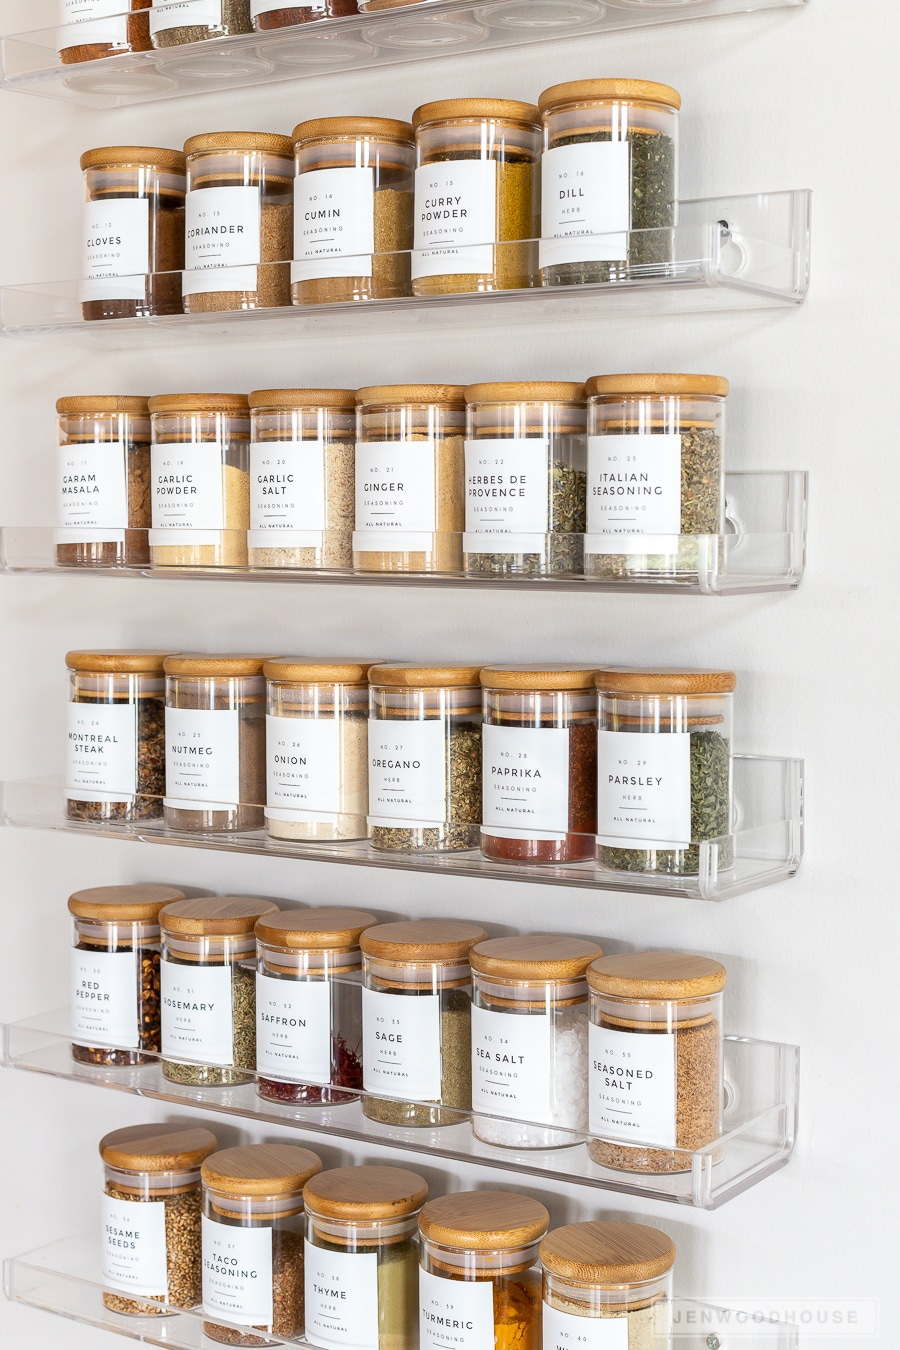 Spice rack organization ideas